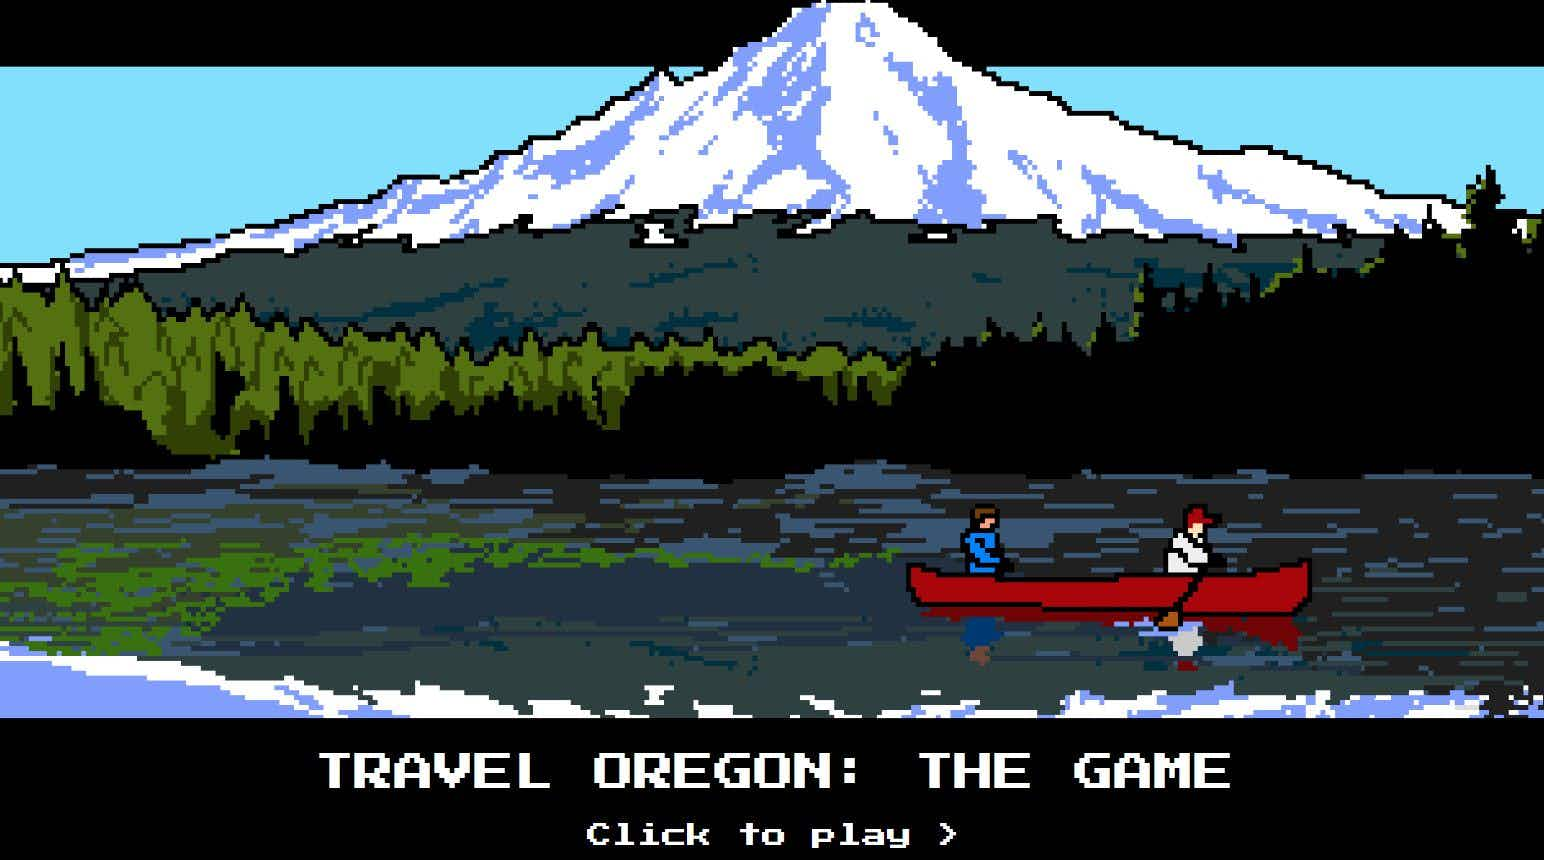 This update on the classic Oregon Trail game will entice you to plan a trip